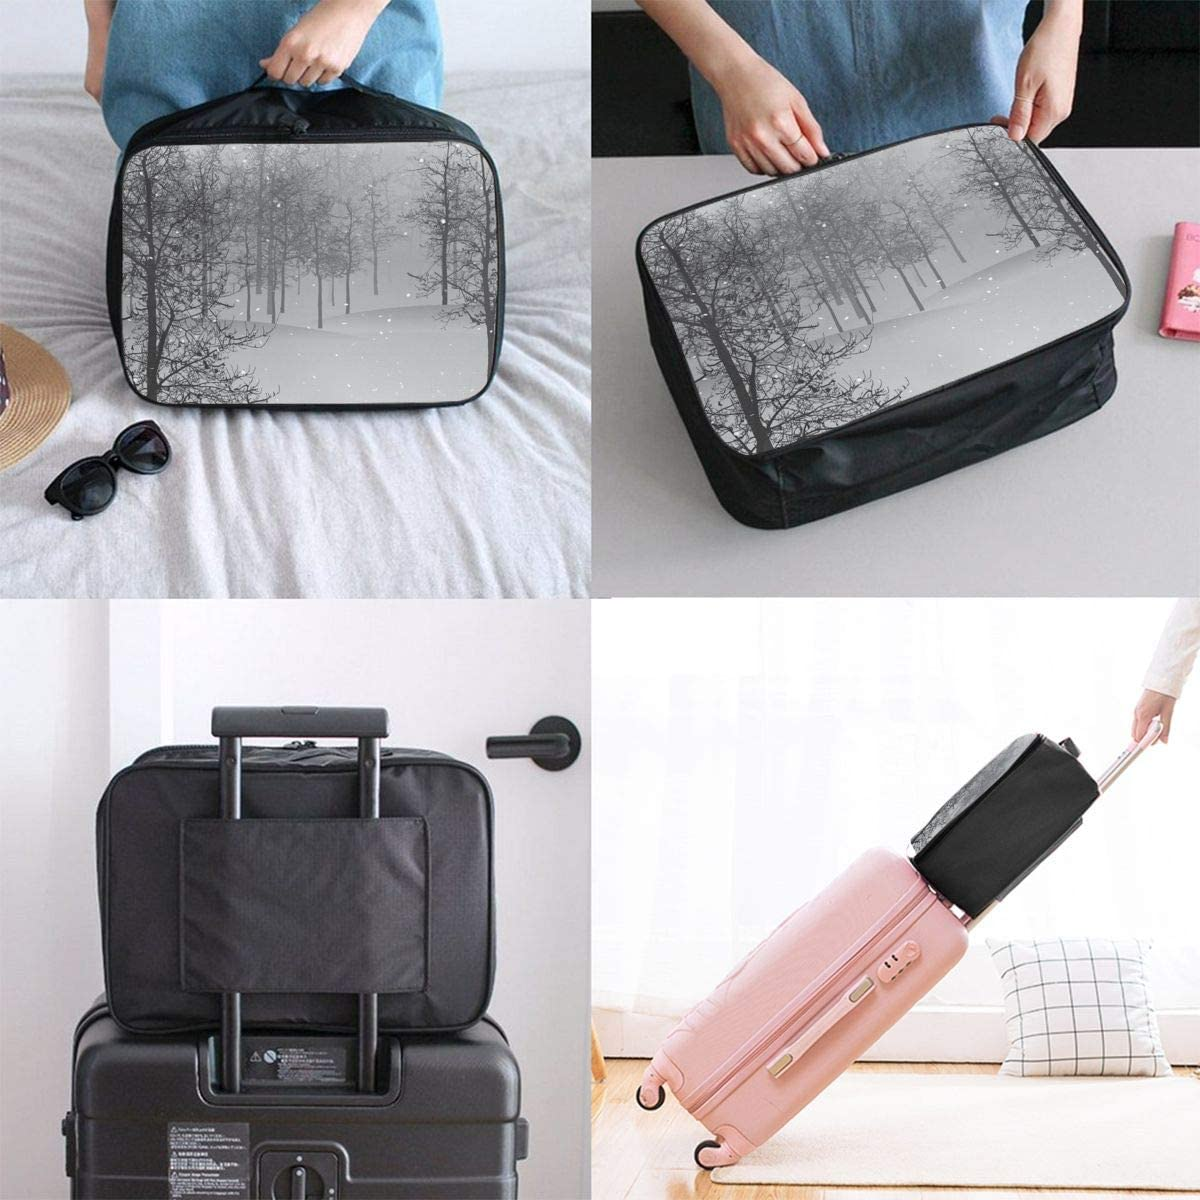 Yunshm Hand Painted Snow Withered Trees Customized Trolley Handbag Waterproof Unisex Large Capacity For Business Travel Storage